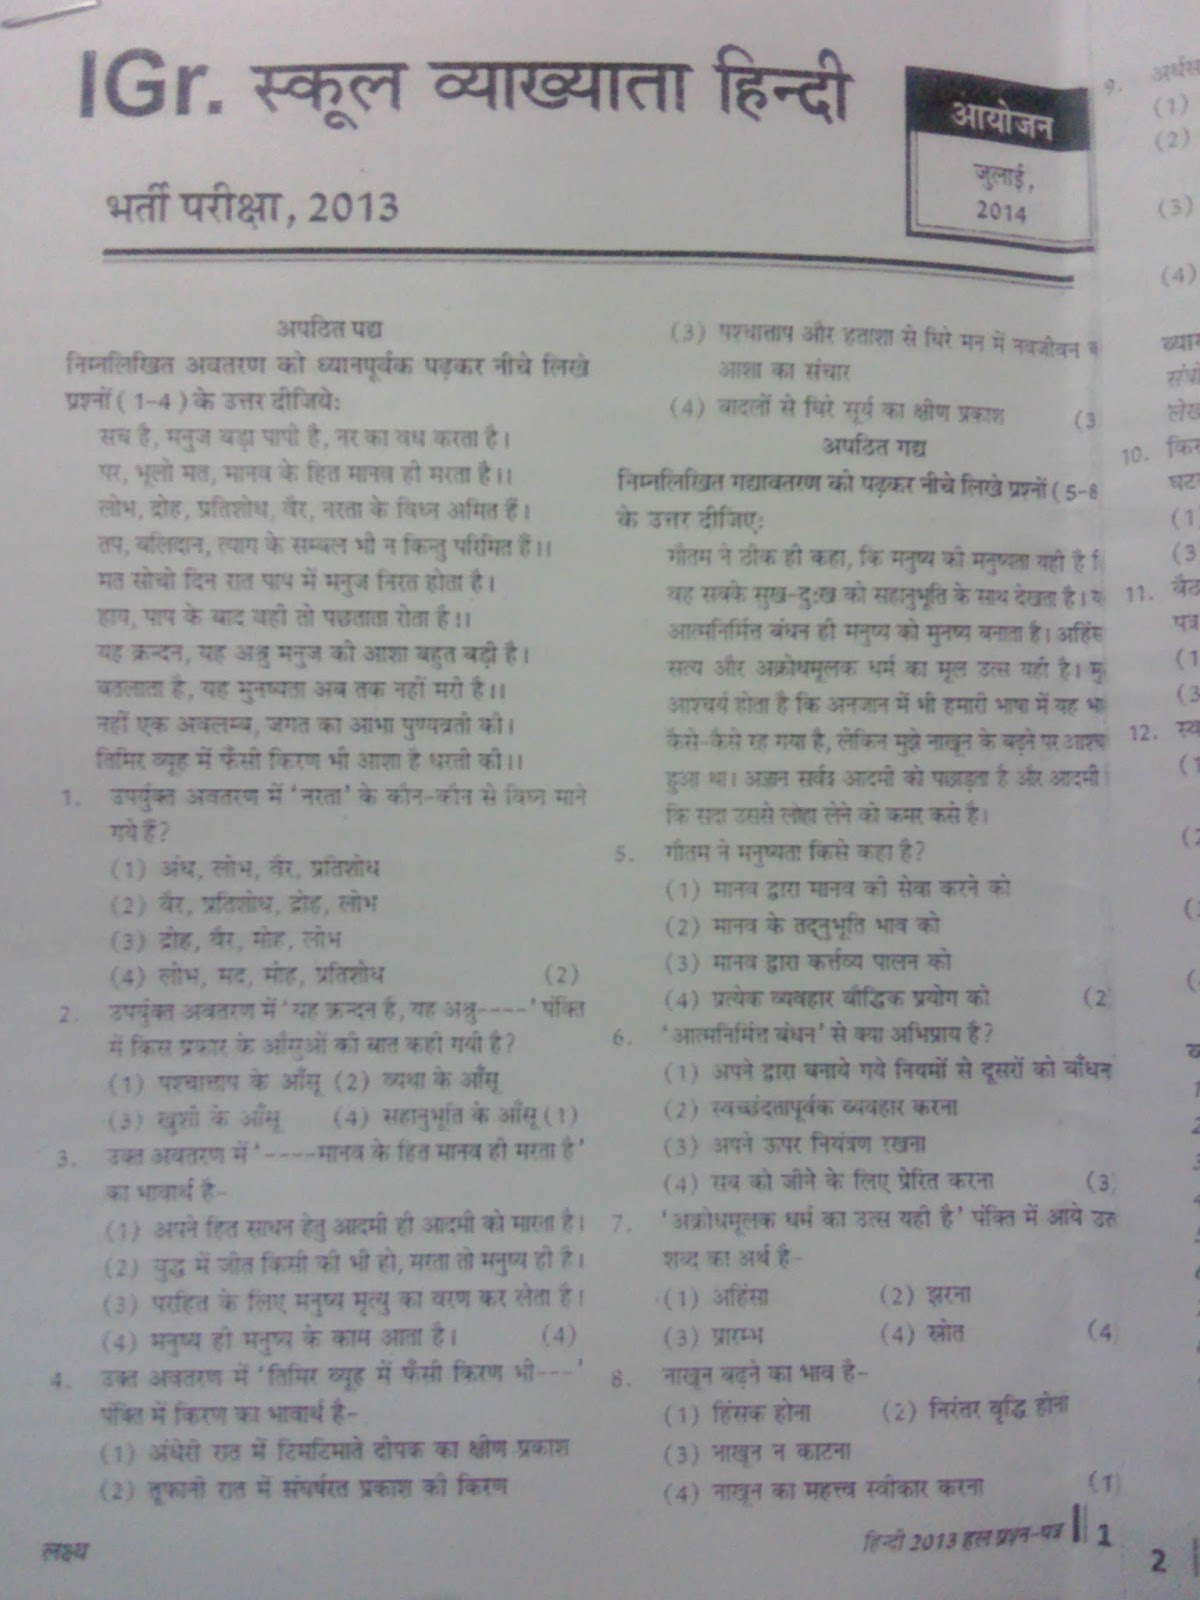 Rpsc 1st grade teacher hindi question paper important solved questions for 2015 hindi